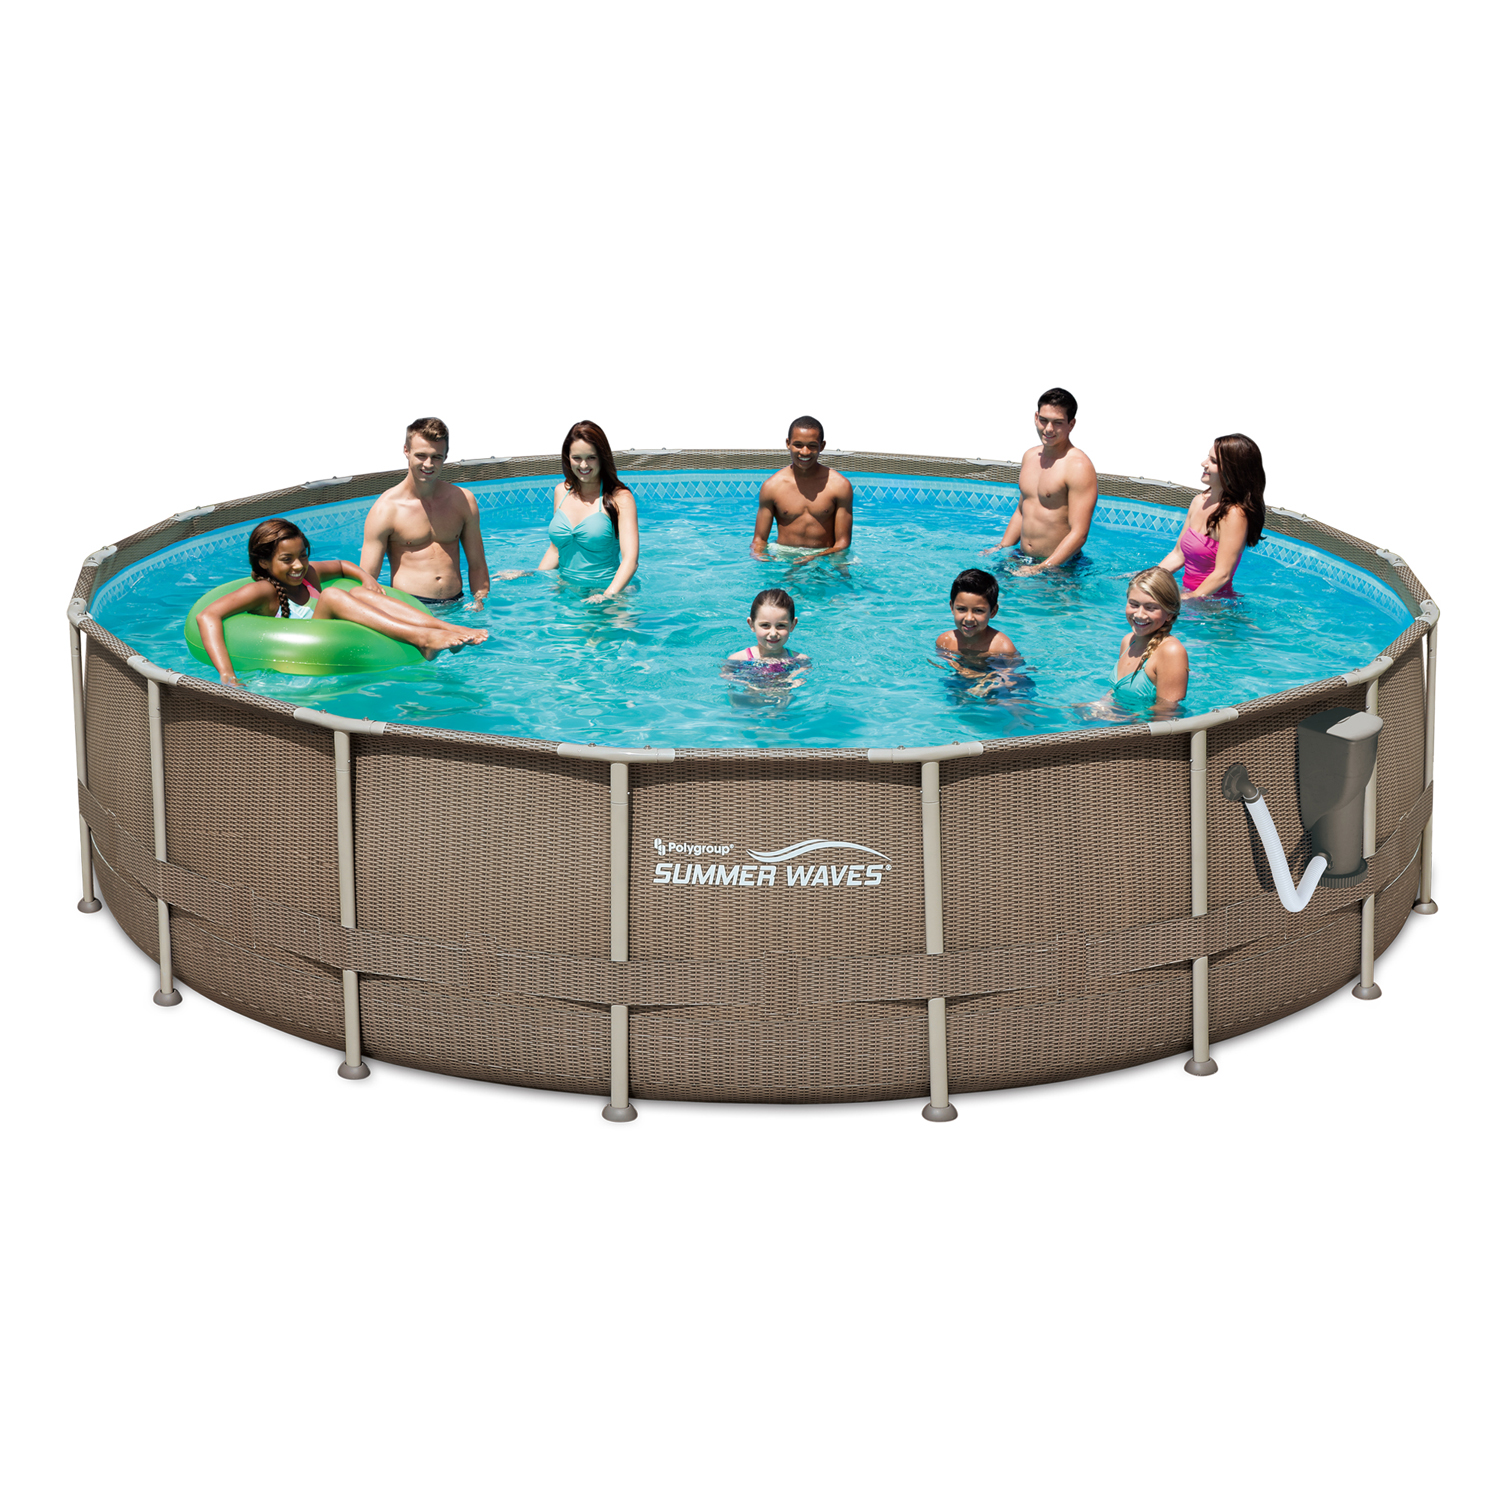 Summer Waves 18ft x 48in Above Ground Frame Pool Set with Filter Pump & Ladder